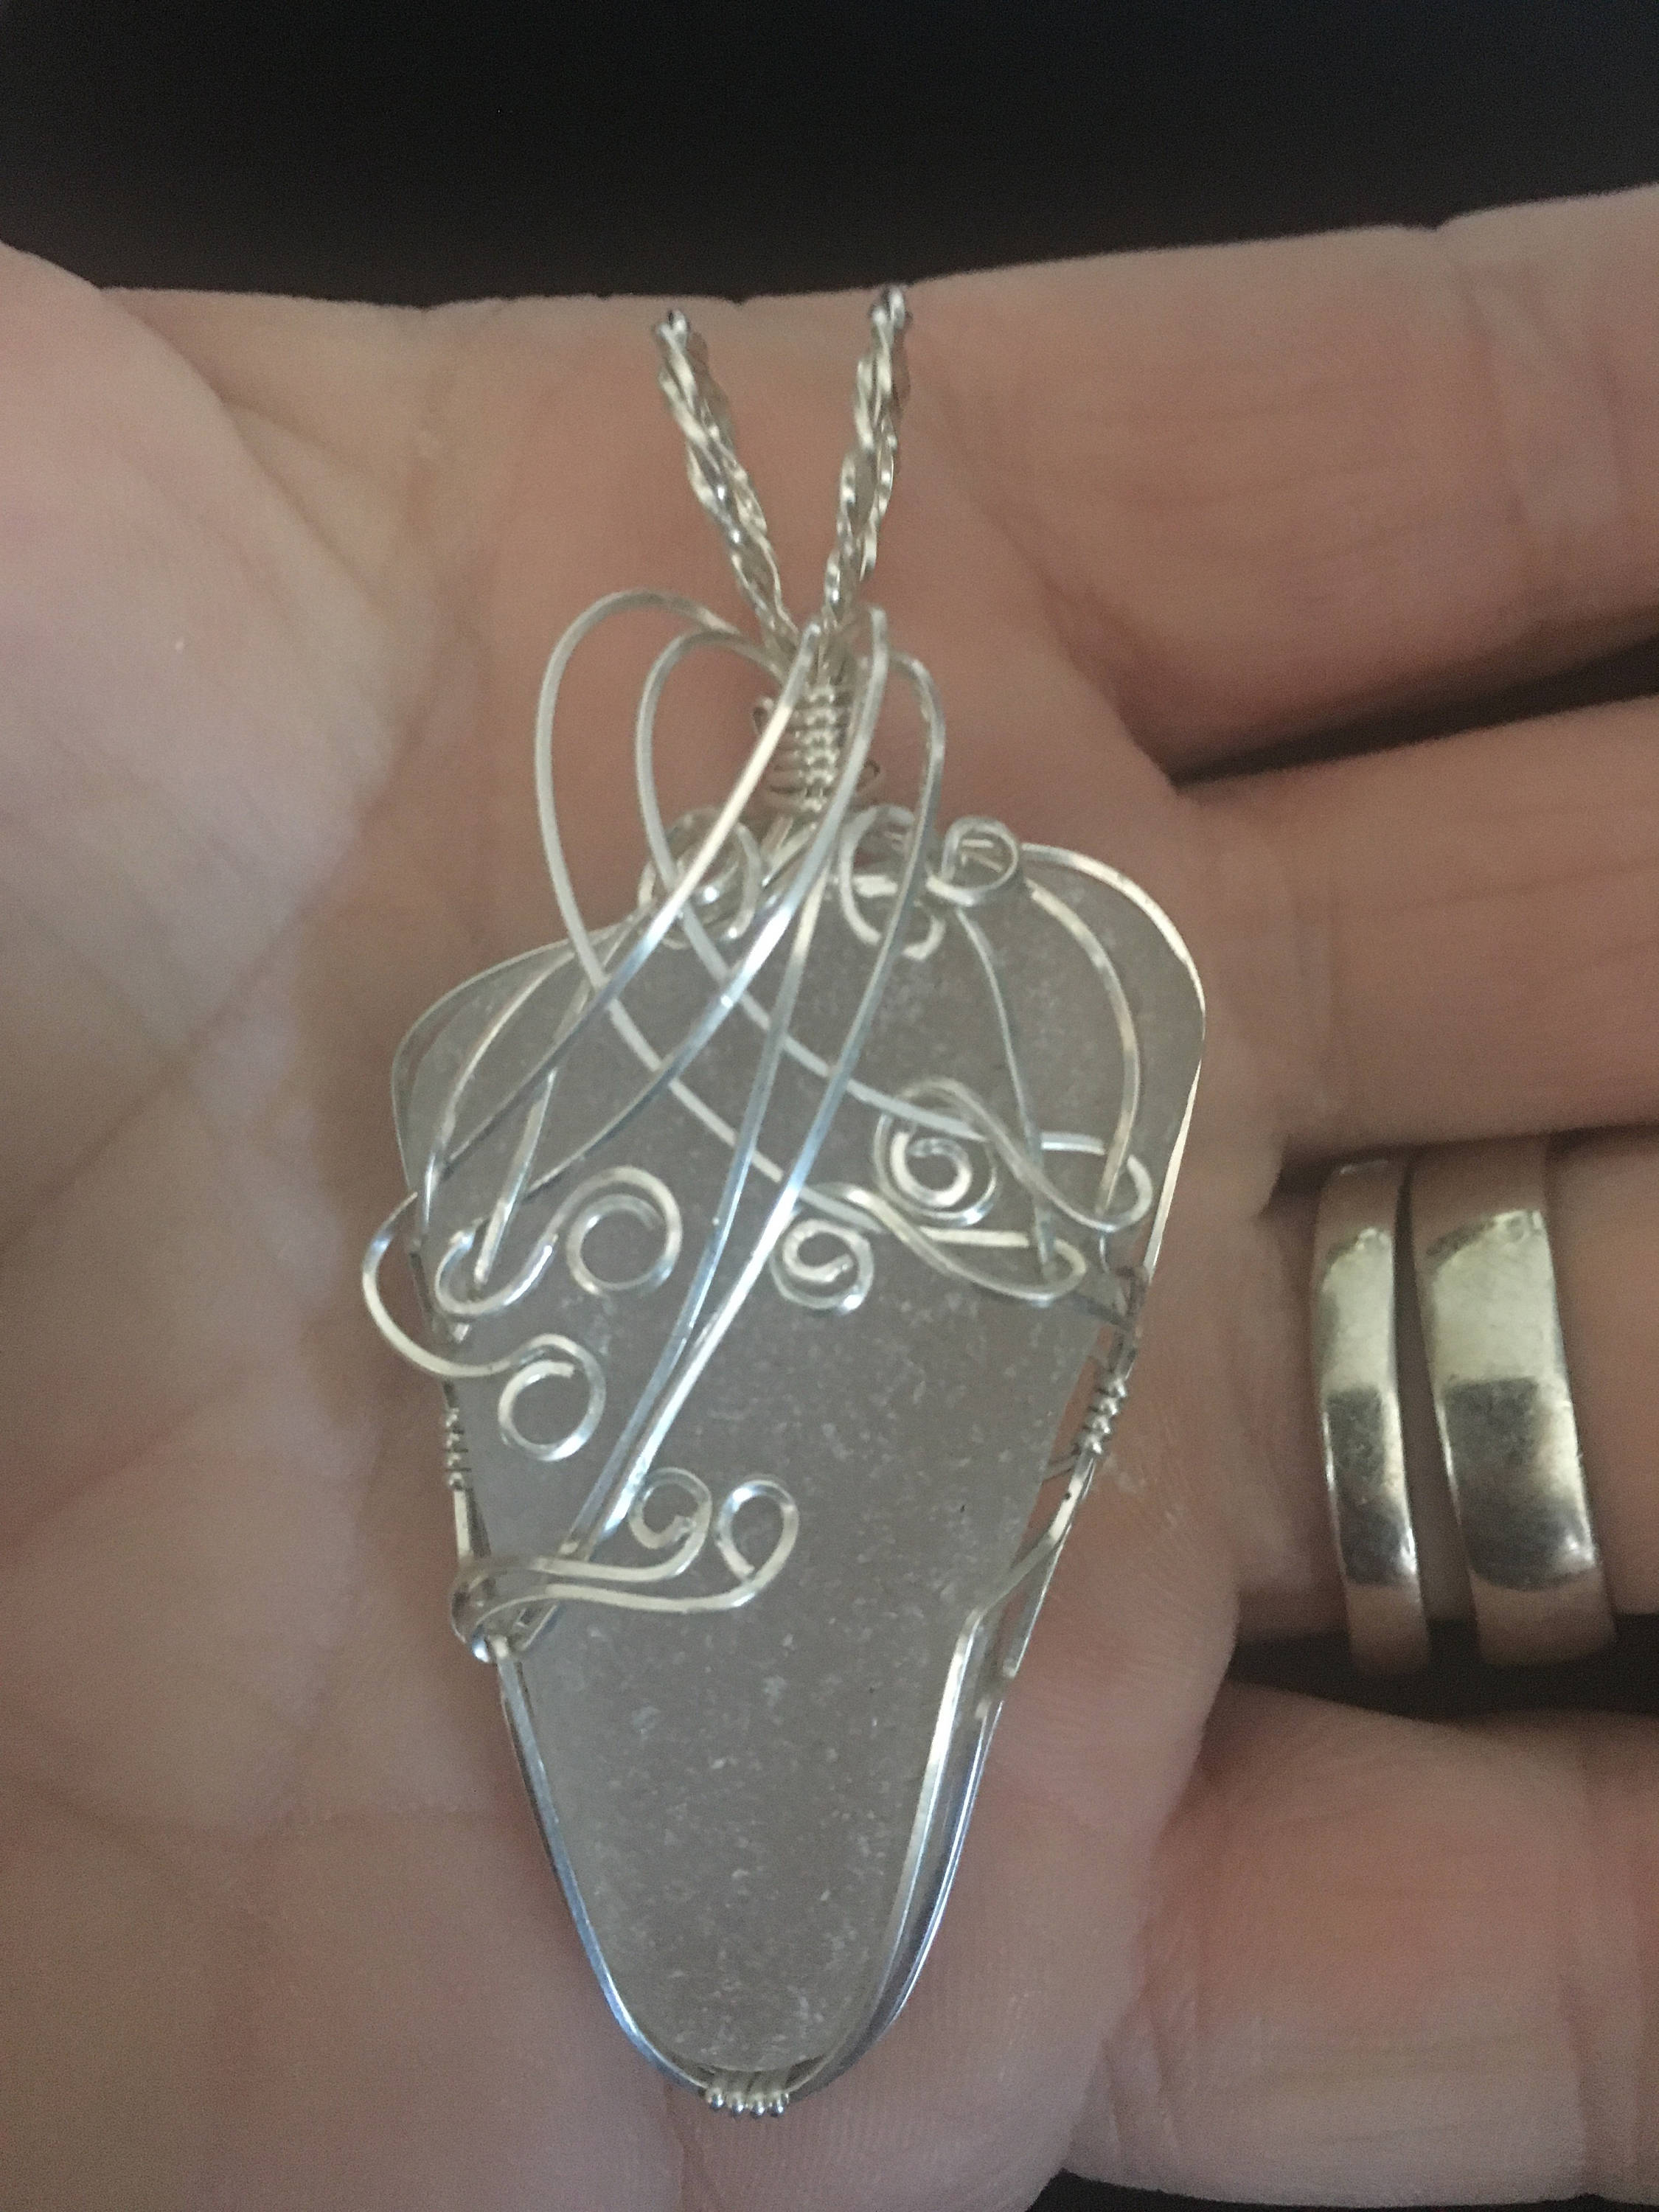 Very large sterling silver wrapped genuine sea glass pendant